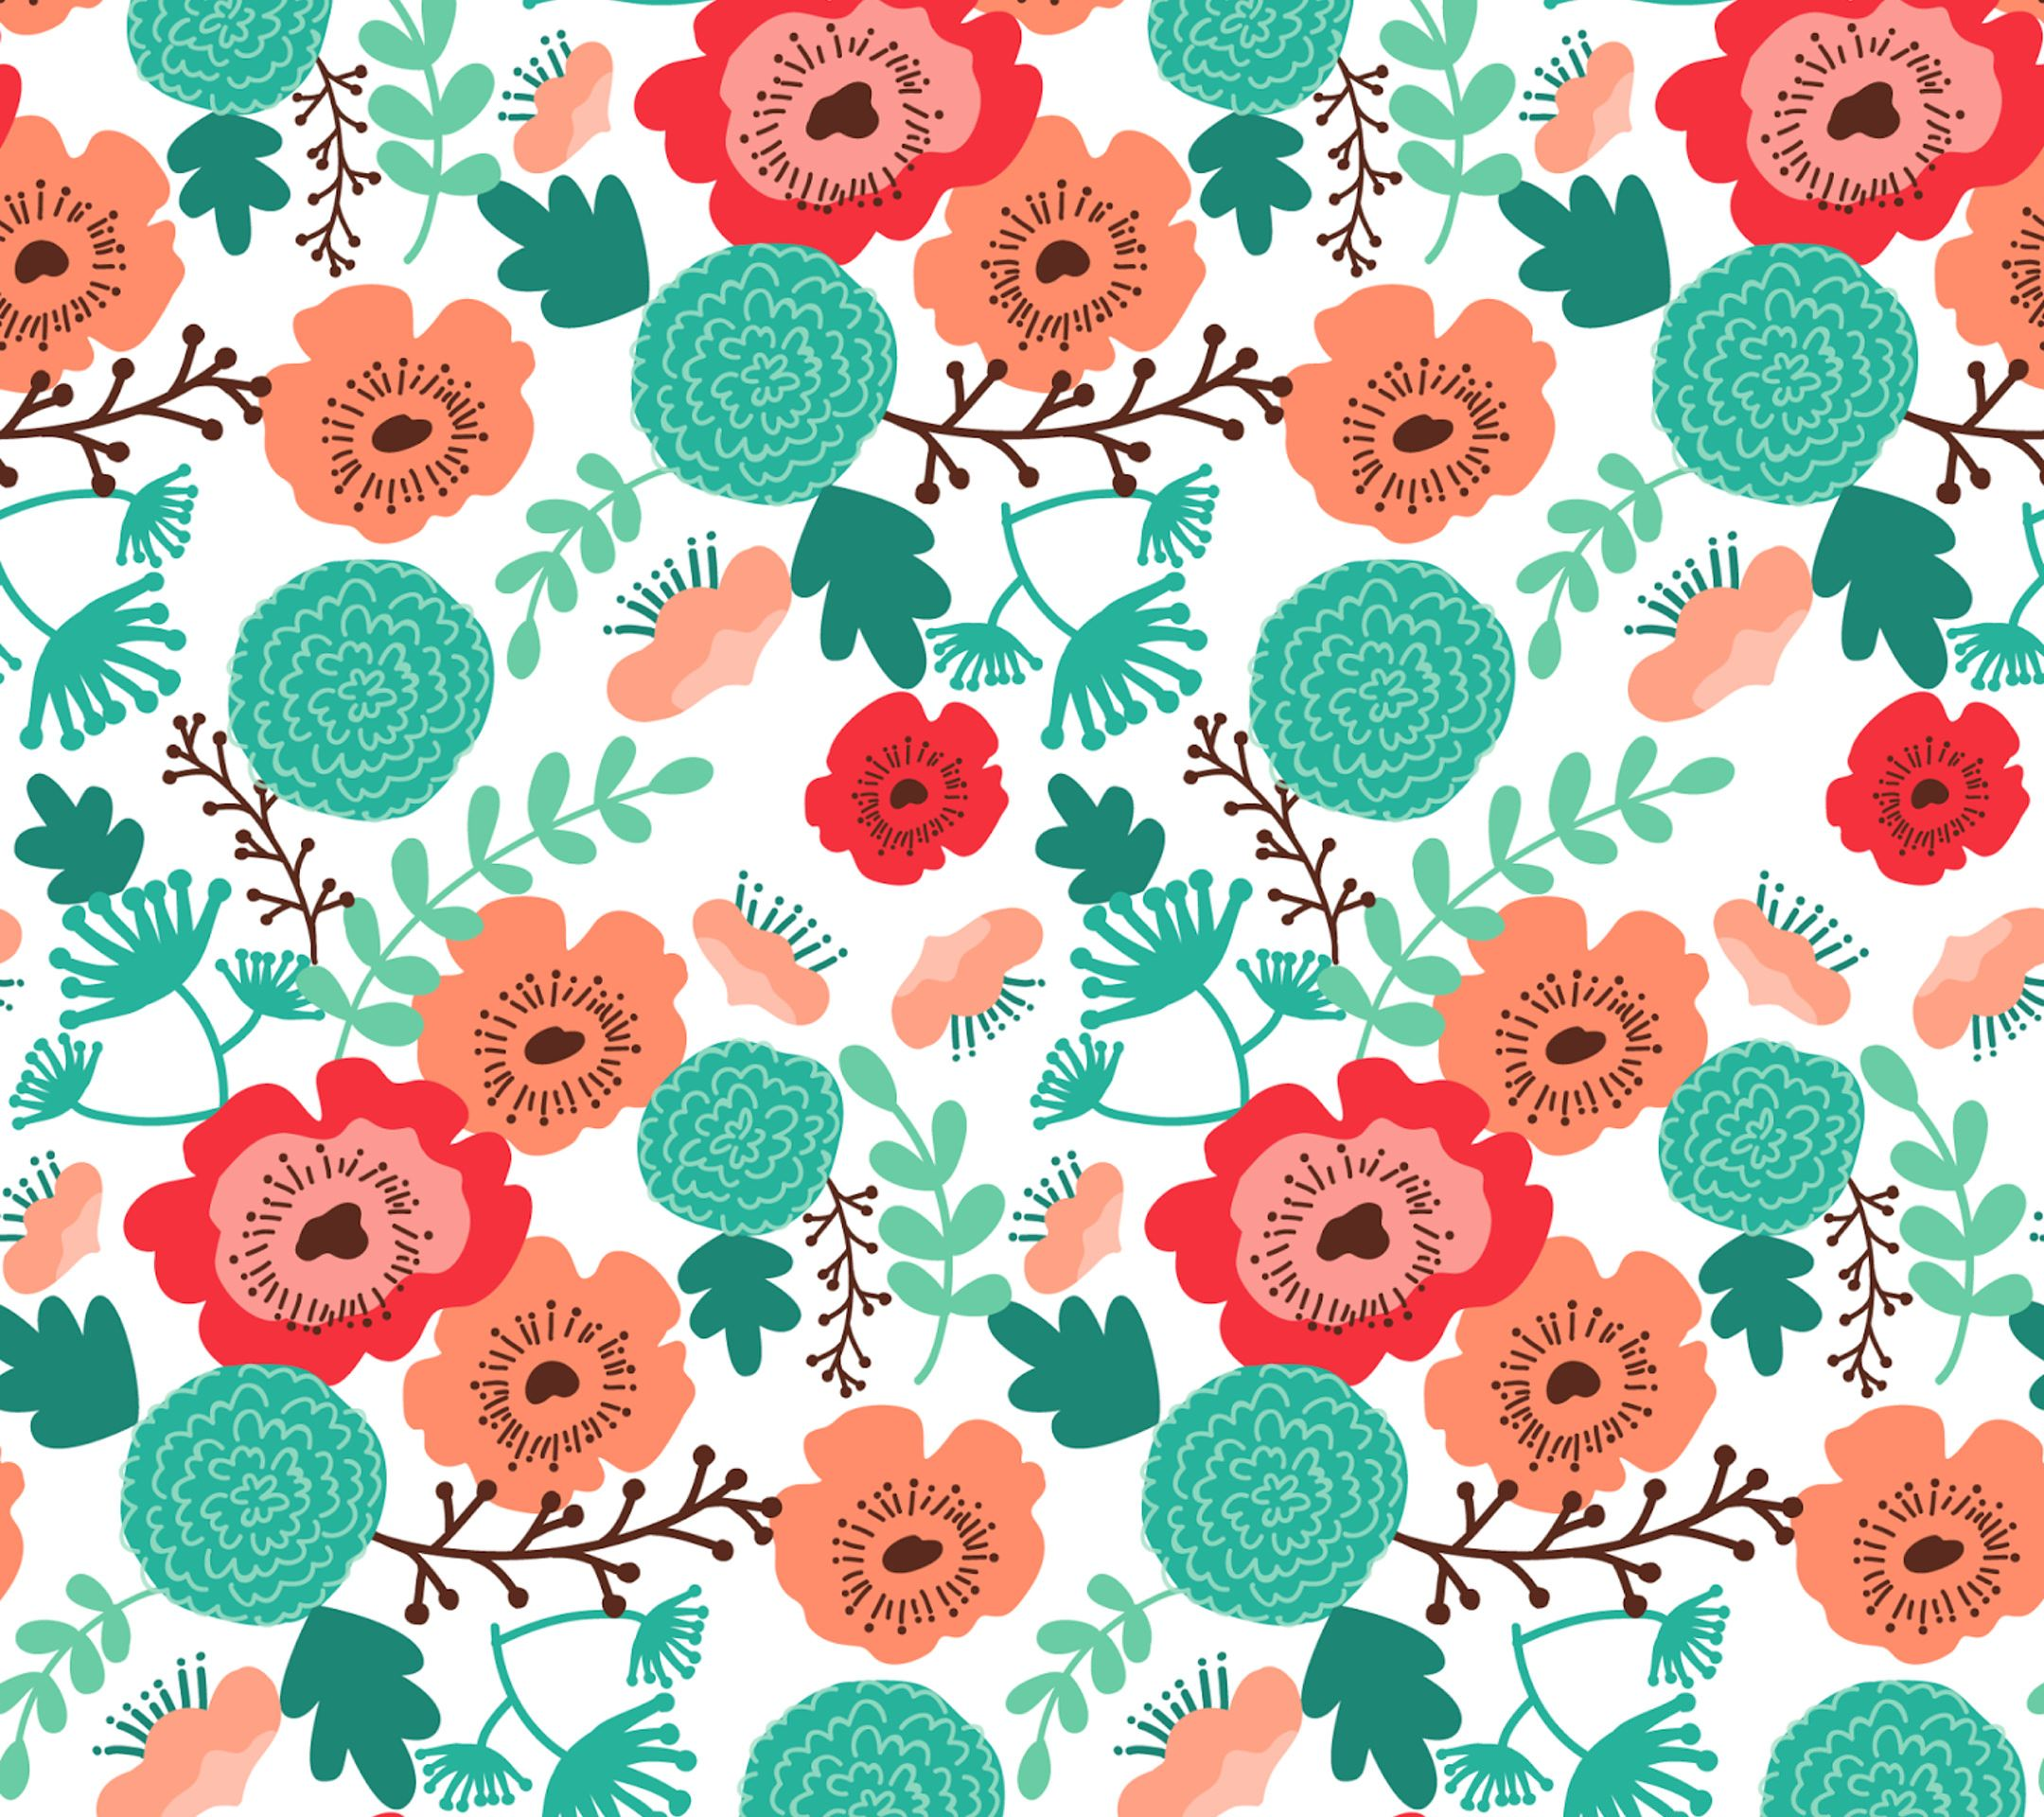 Floral Pattern Tap To See More Beautiful Flowery Patterend Abstract Wallpapers Mobile9 スマホ壁紙 壁紙 花柄